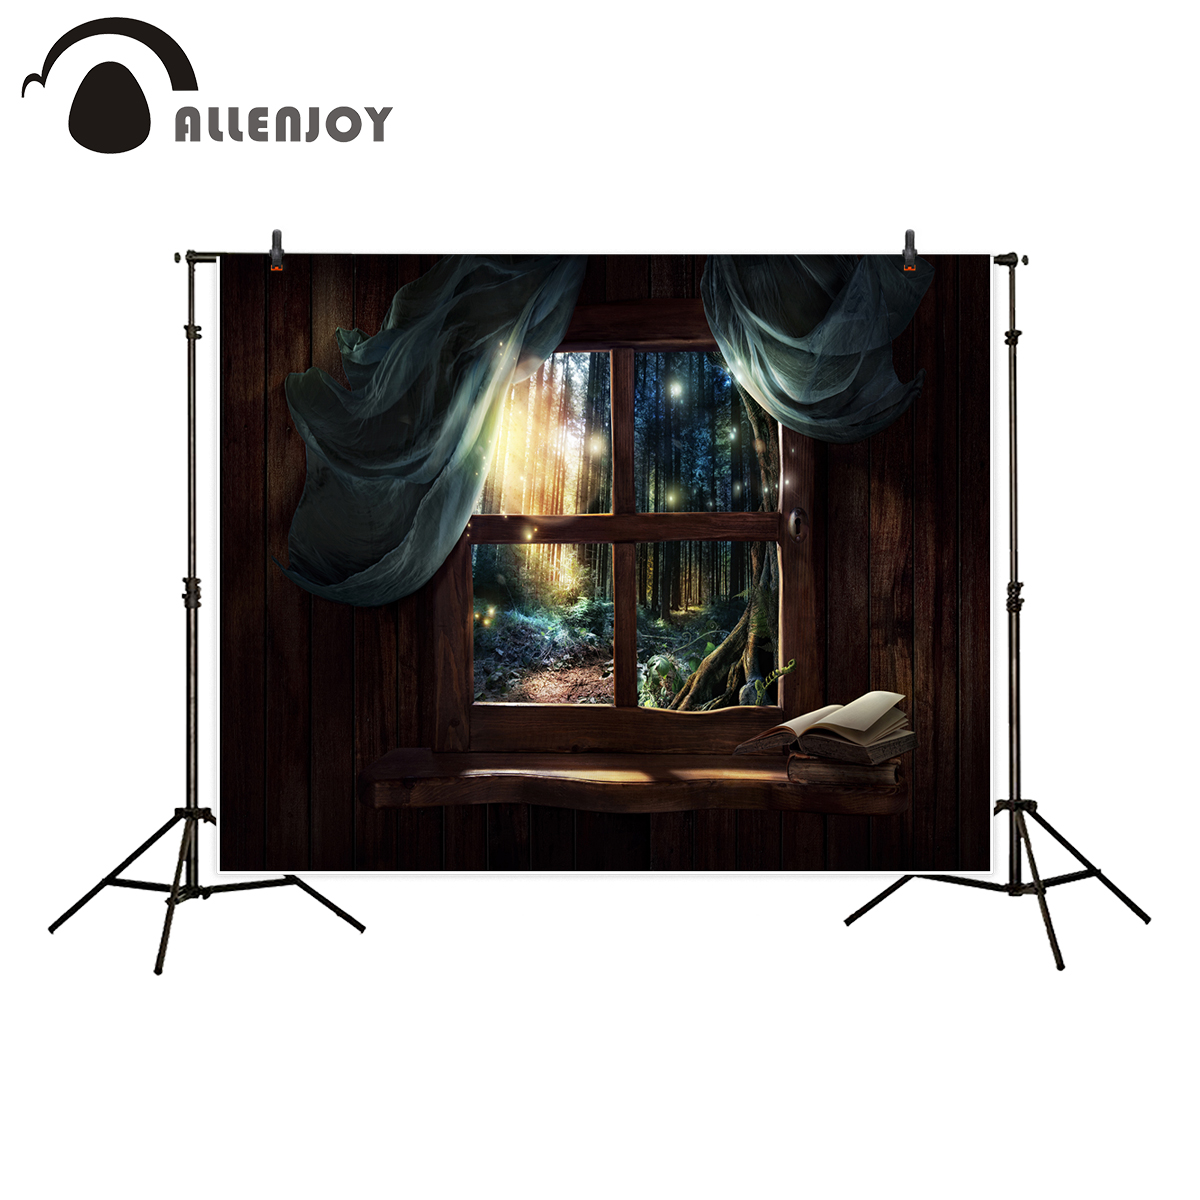 Allenjoy photography backdrop fairy tale window magic forest kid wonderland photocall background photo shoot prop newborn